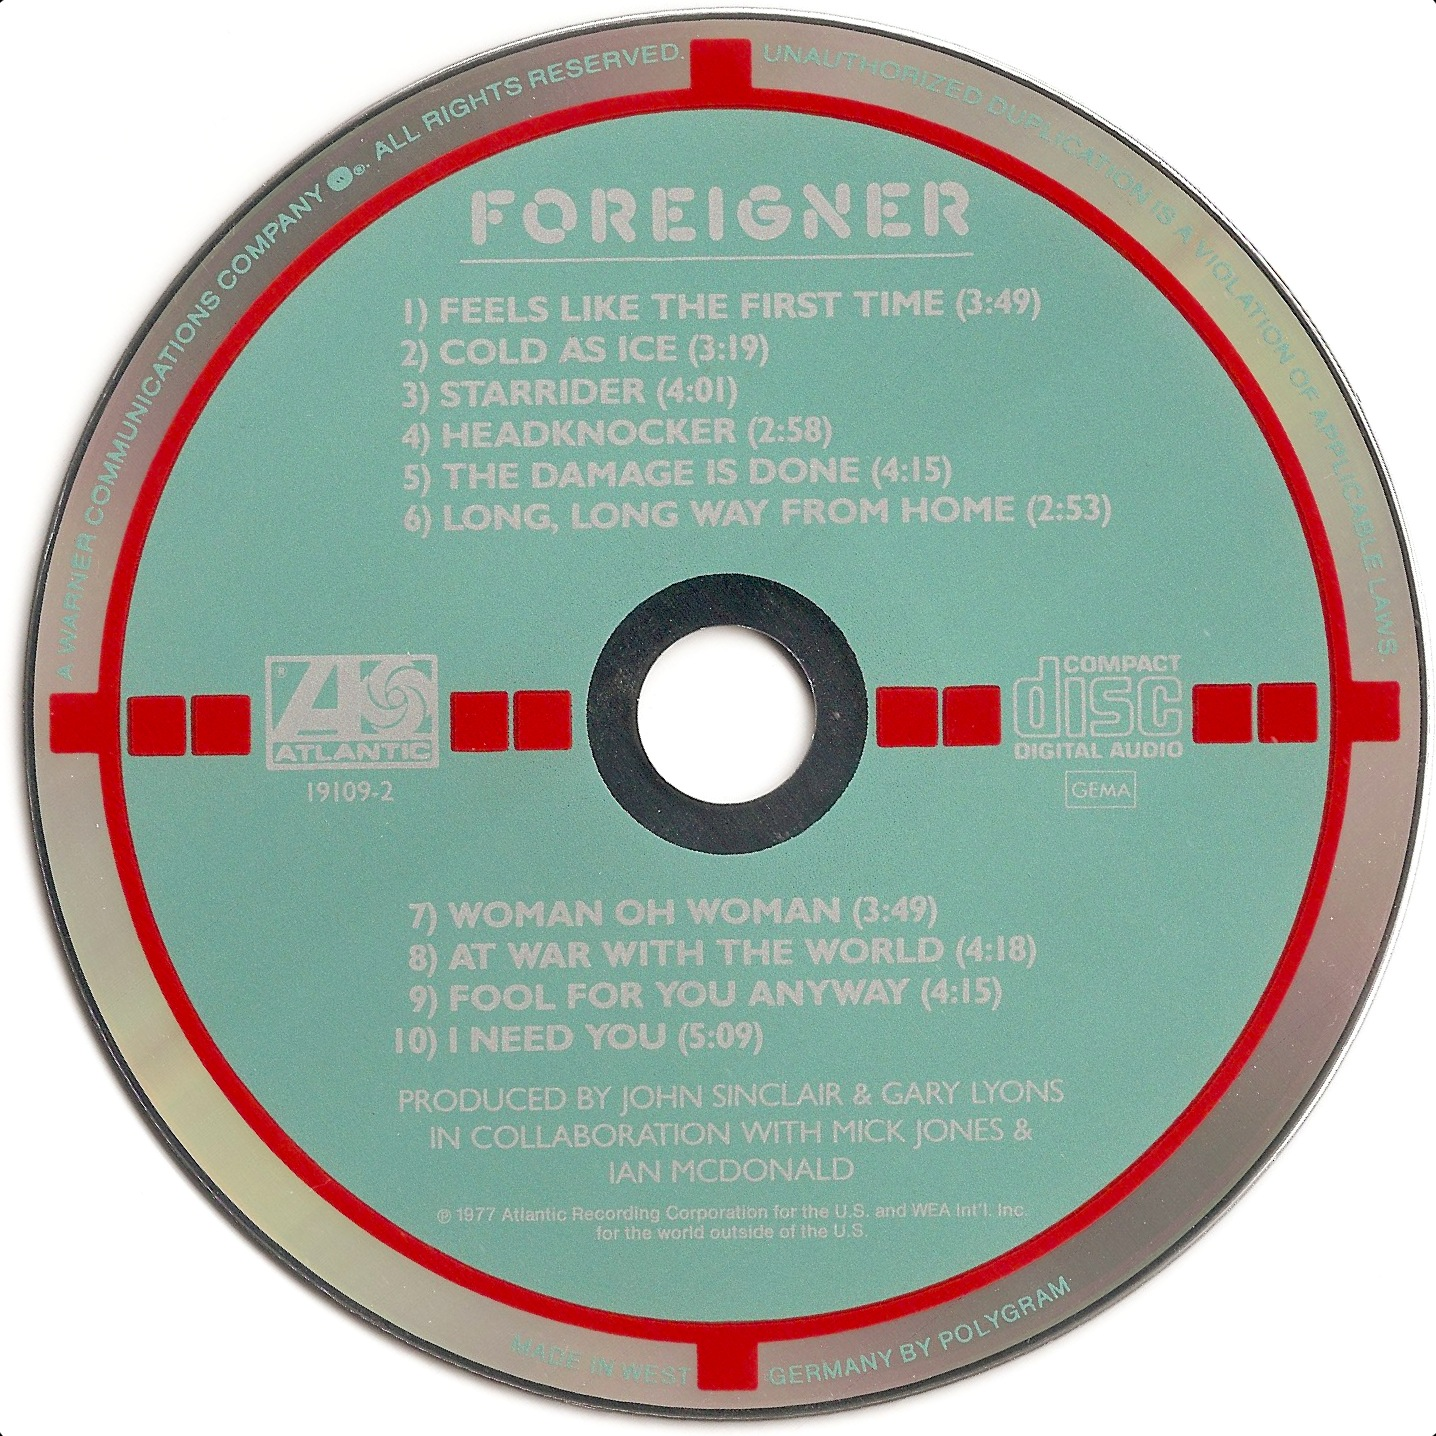 D 1b : Atlantic   19109 2   Red / Teal / Silver   MADE IN WEST ☐ GERMANY BY  POLYGRAM   No Outer Mirror Band   7567 19109 2 2895 240 03 #